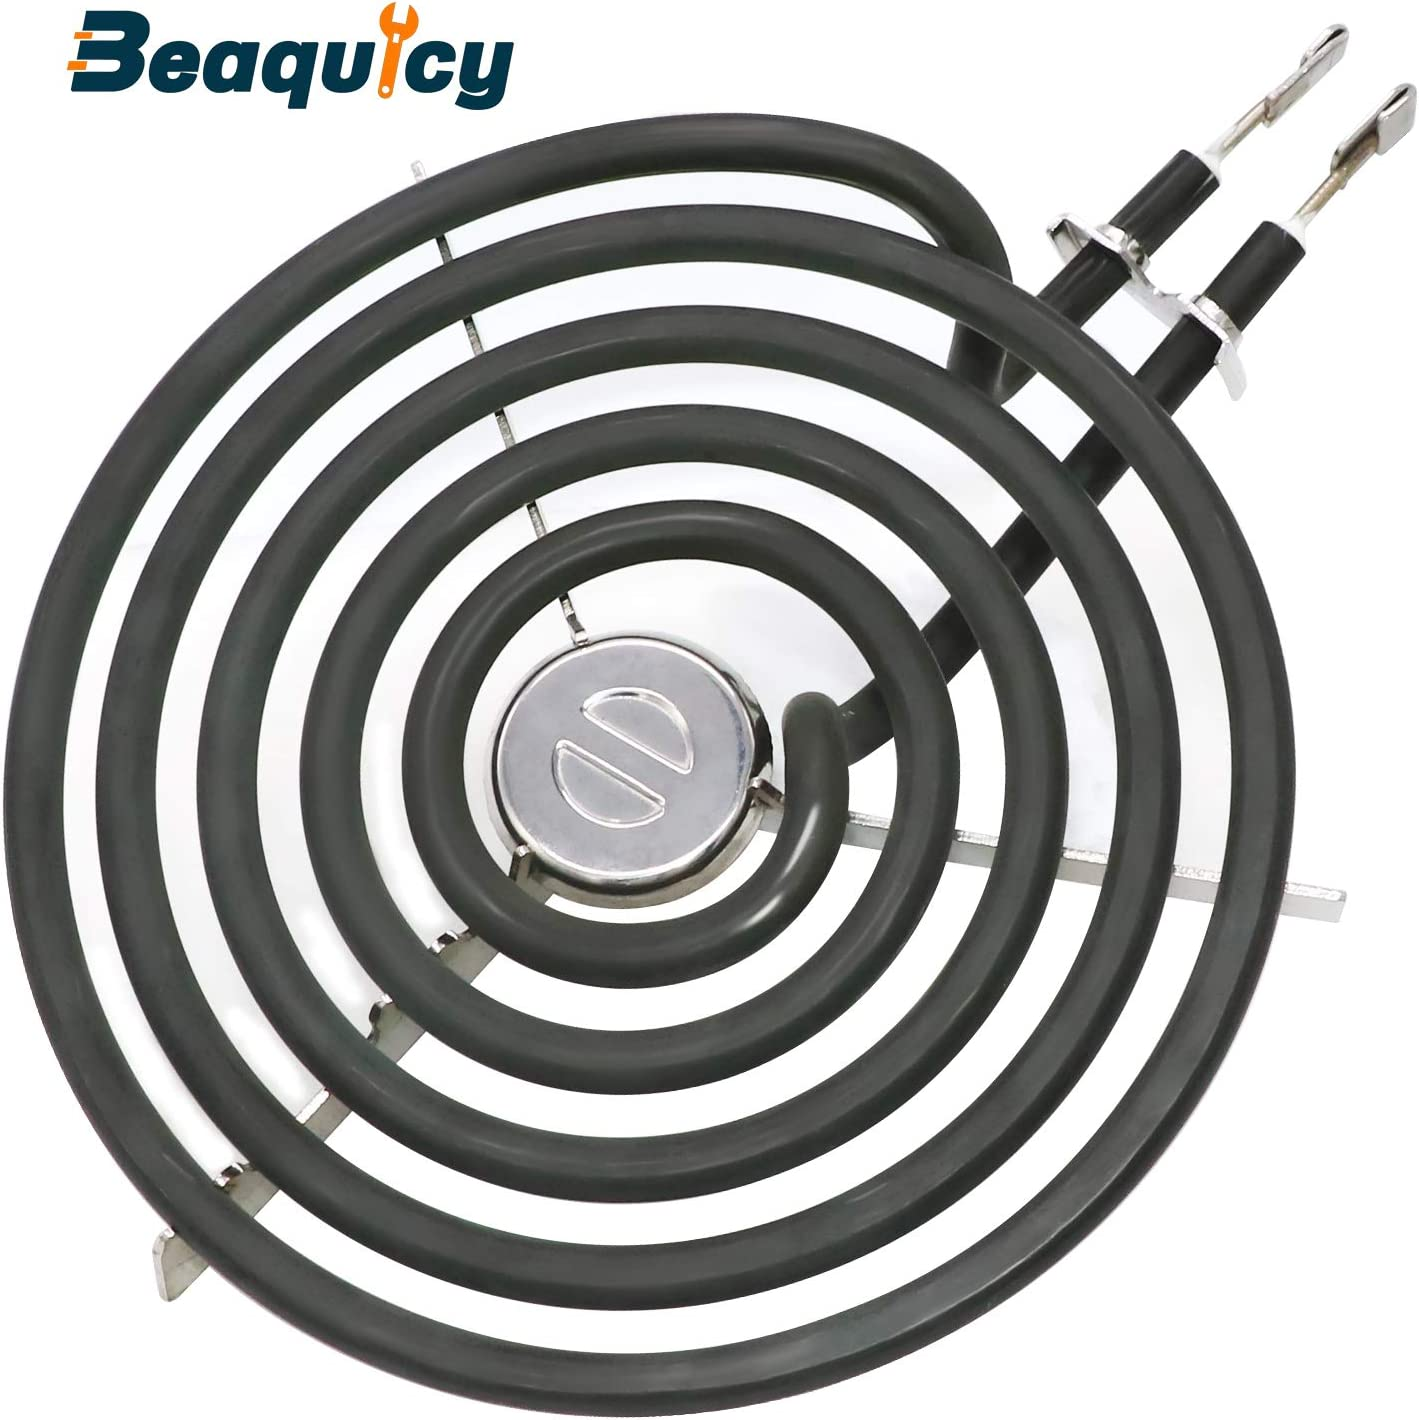 """WB30M1 Stove Burner Surface Element 6"""" 5 Turns by Beaquicy - Replacement for Kenmore GE Hotpoint Electric Range Burner"""